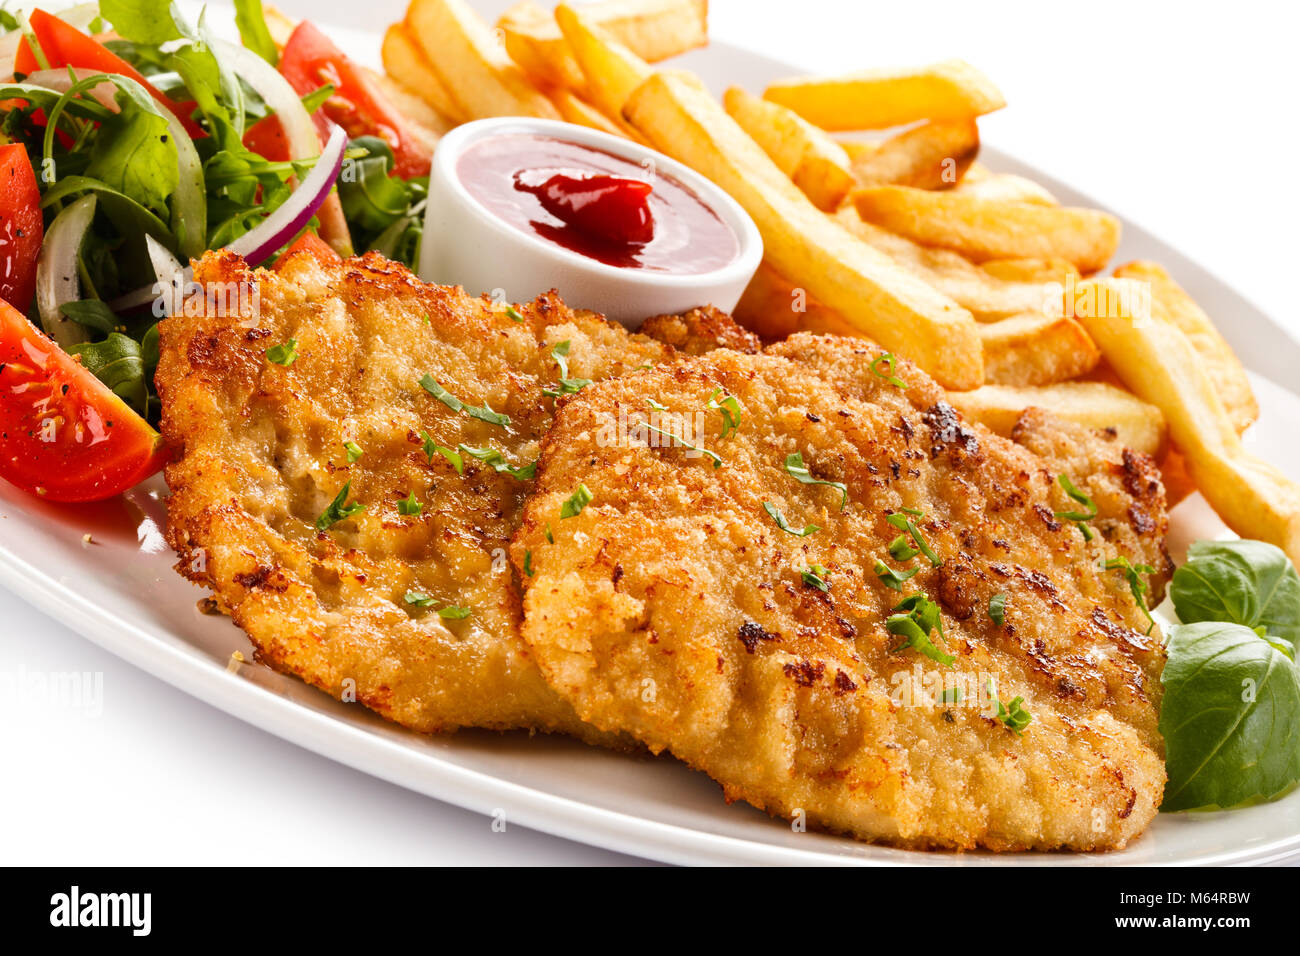 Fried pork chop, French fries and vegetables isolated on white background Stock Photo